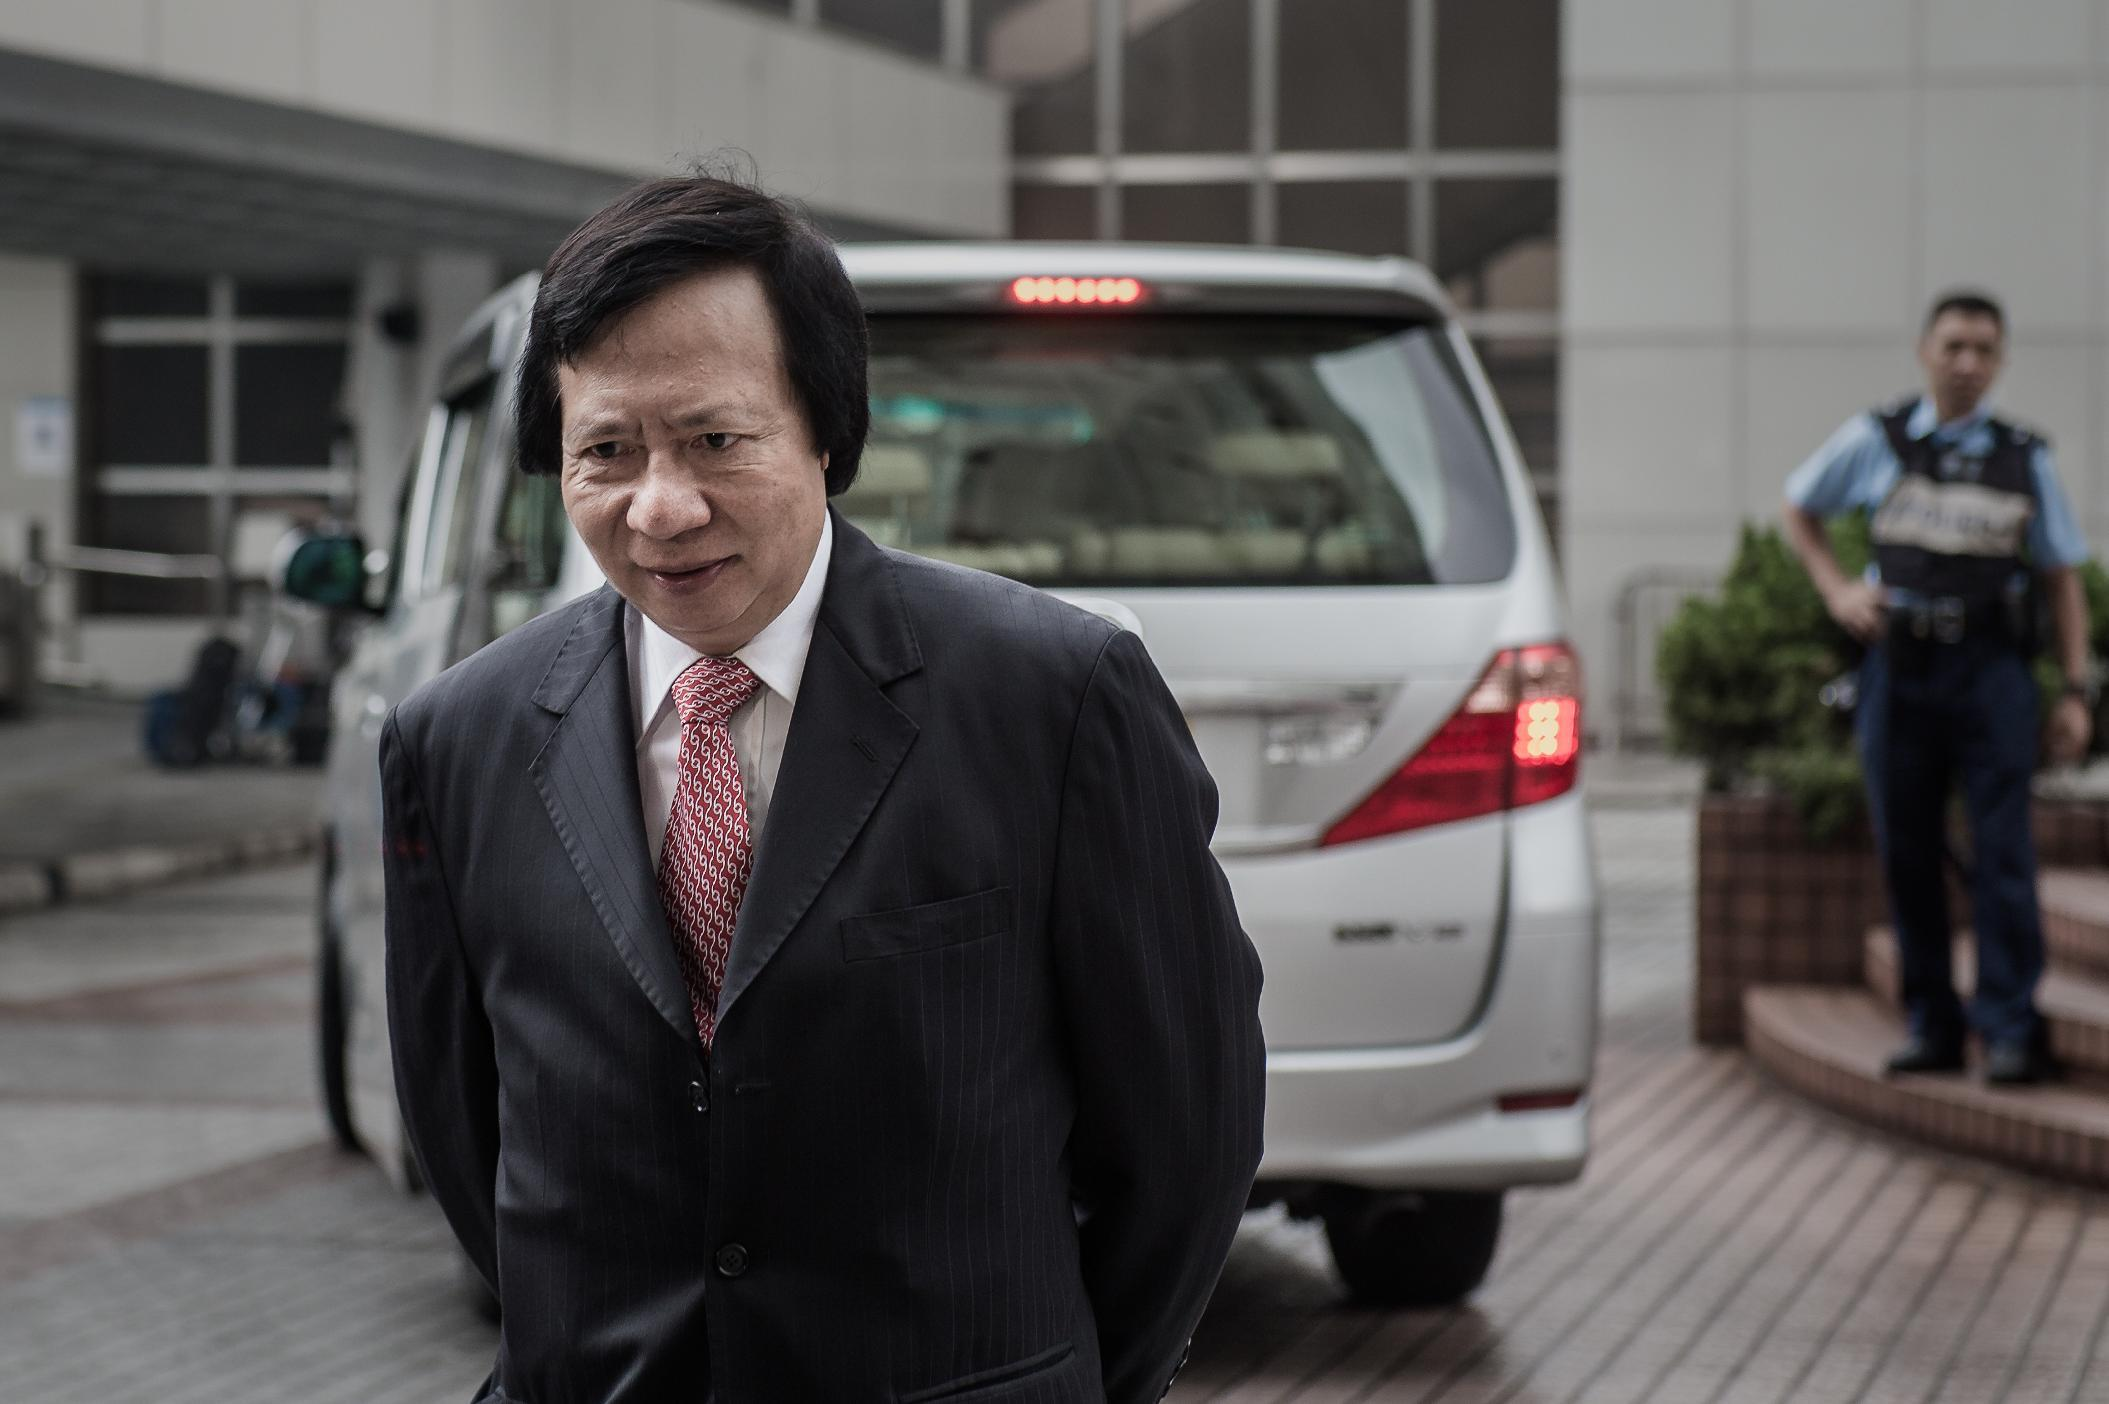 Hong Kong tycoon and former senior official face jail for graft